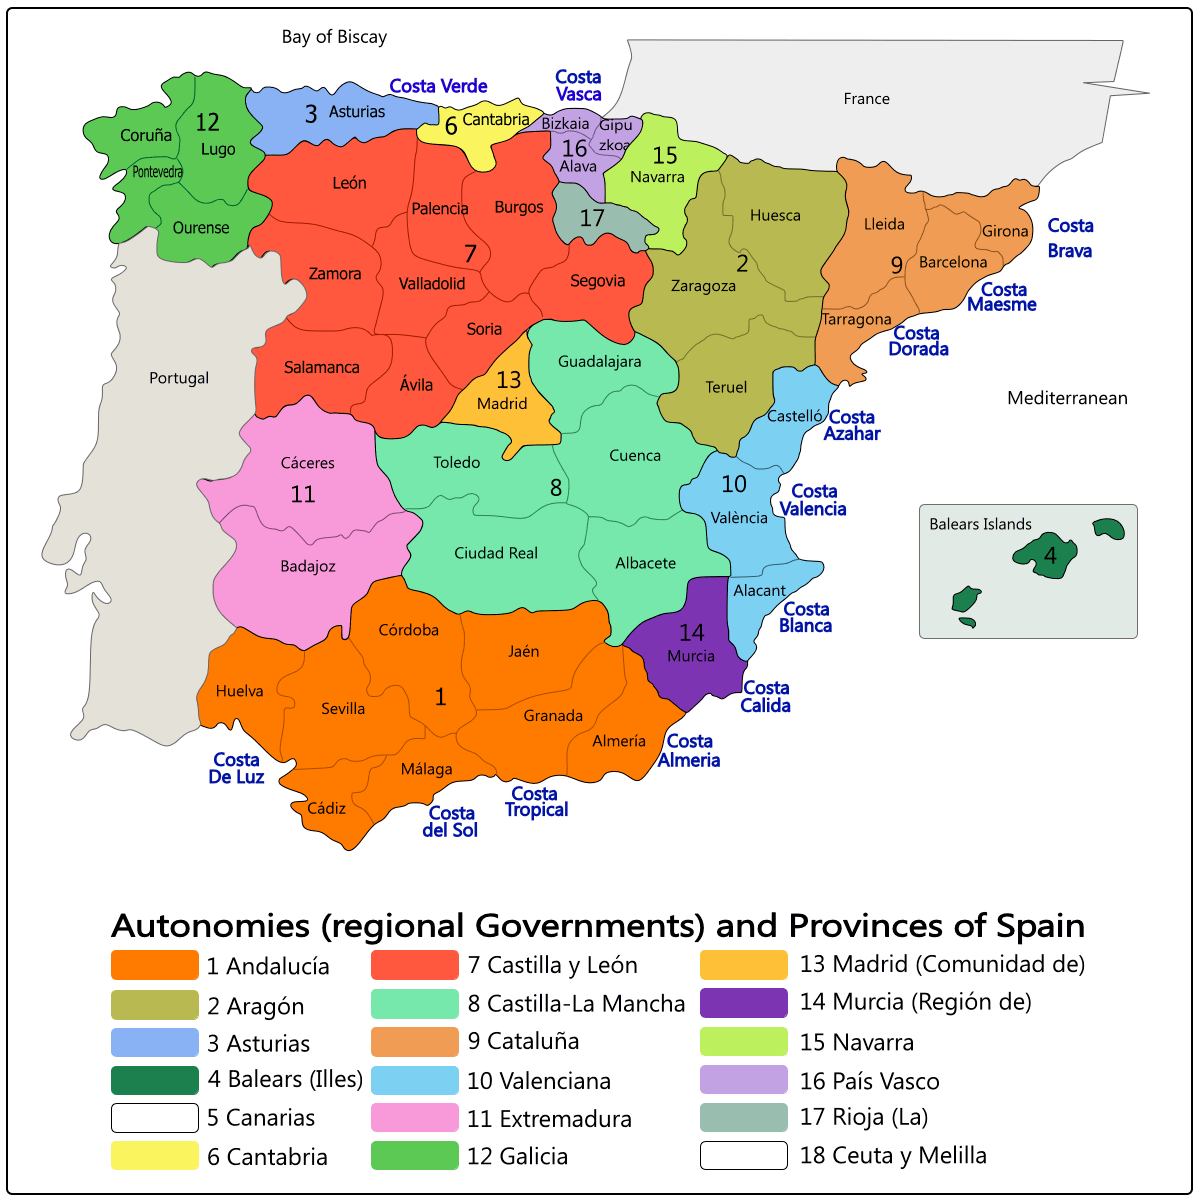 파일:Spanish-Regions-Provinces-1200X1200.png